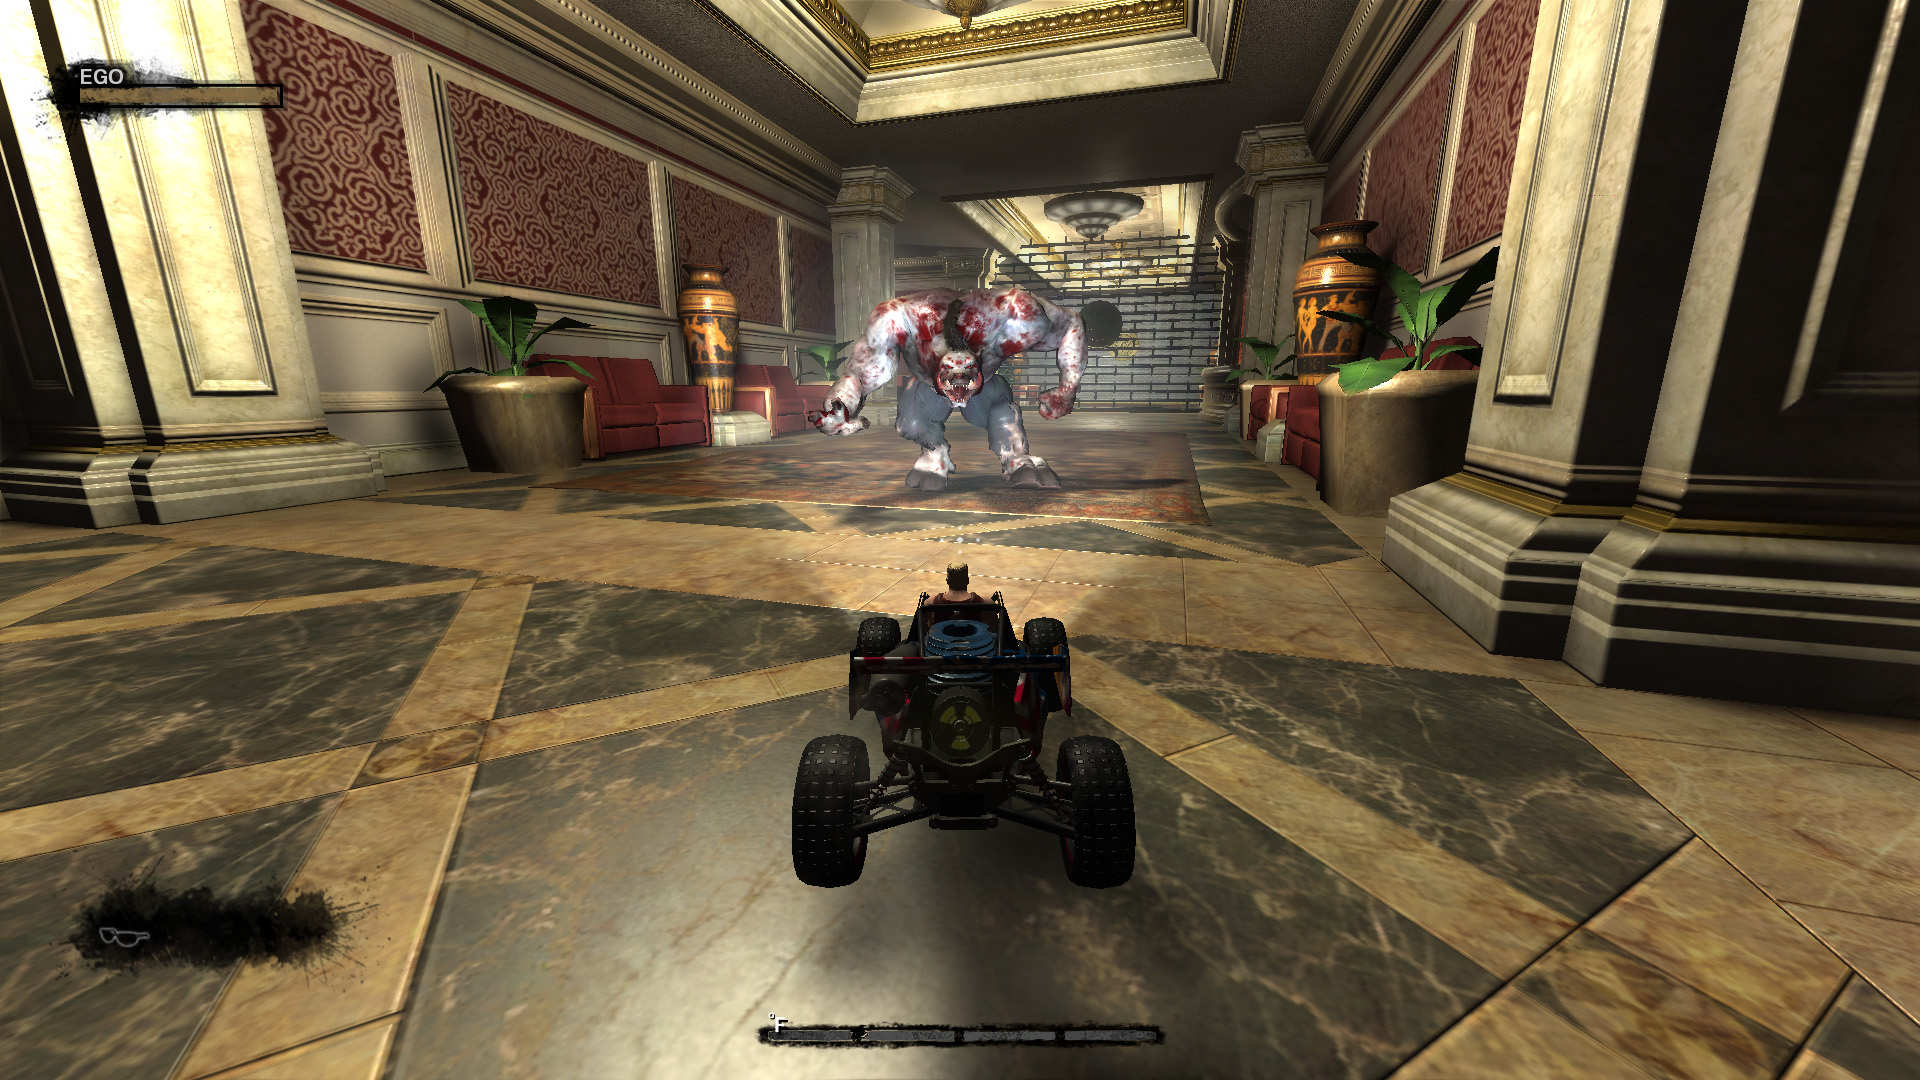 Duke Nukem Forever: Leaked Images and Video